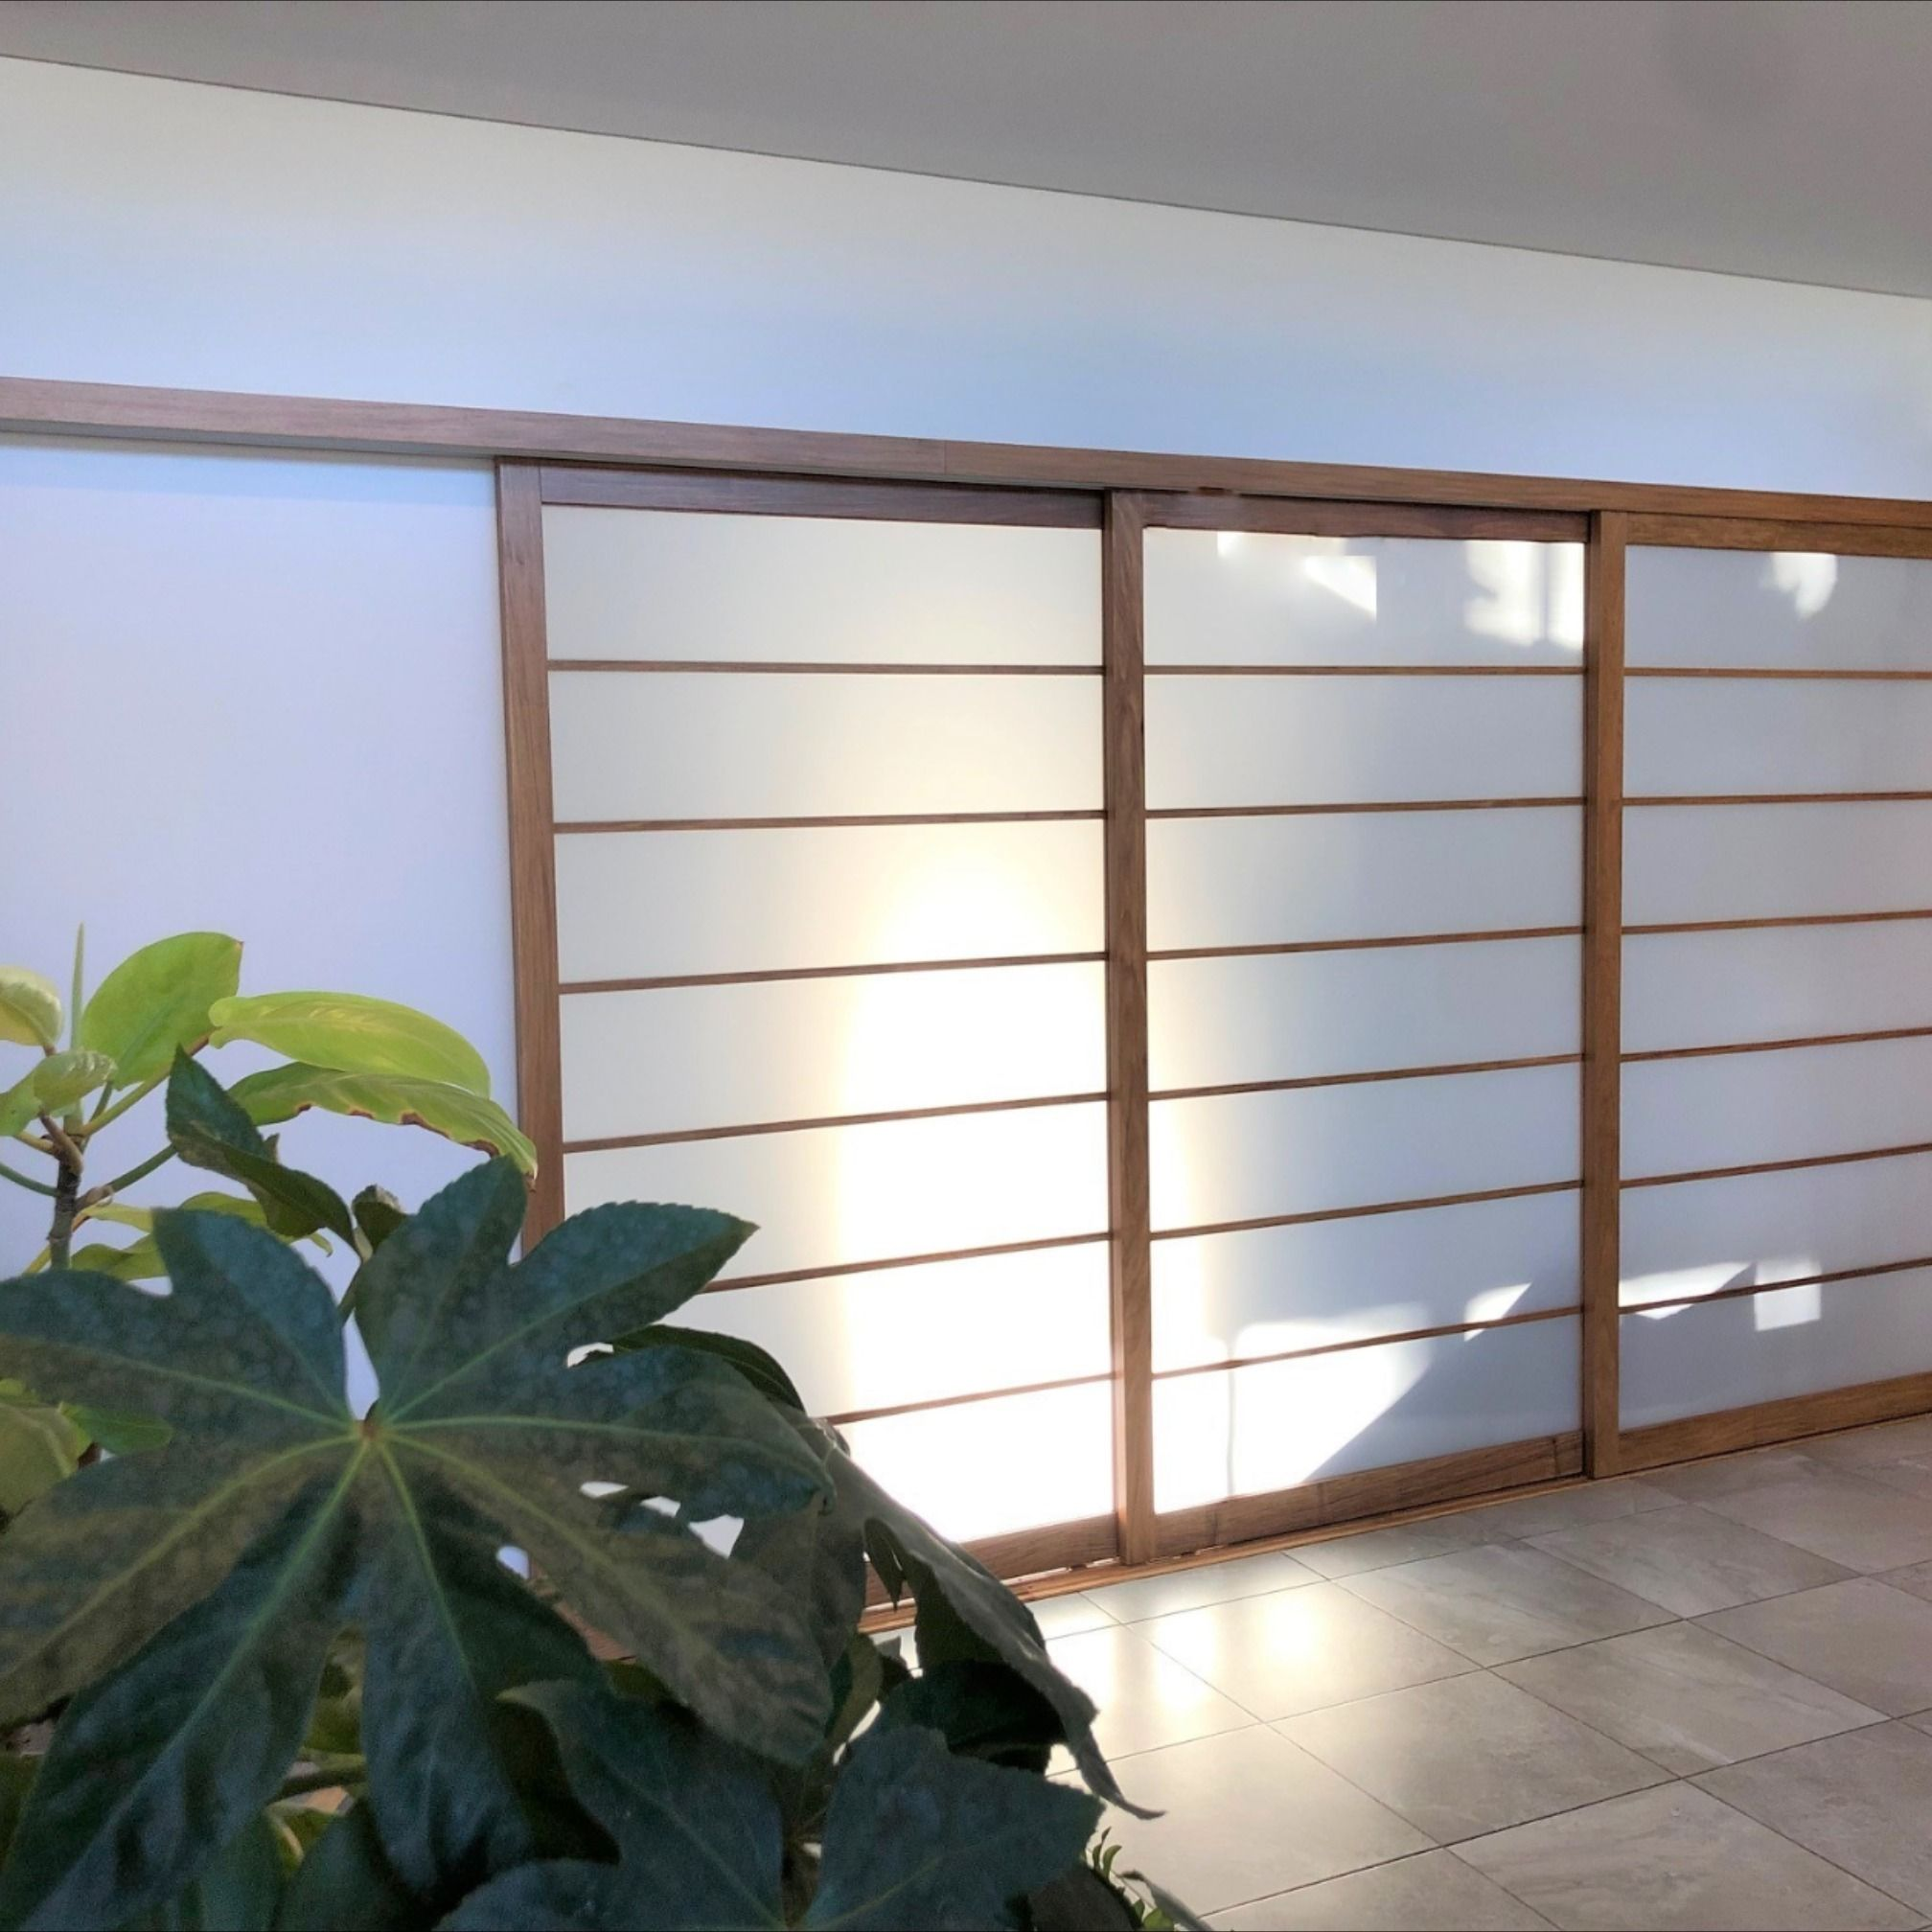 Shoji Screens add a touch of elegance to this space. This